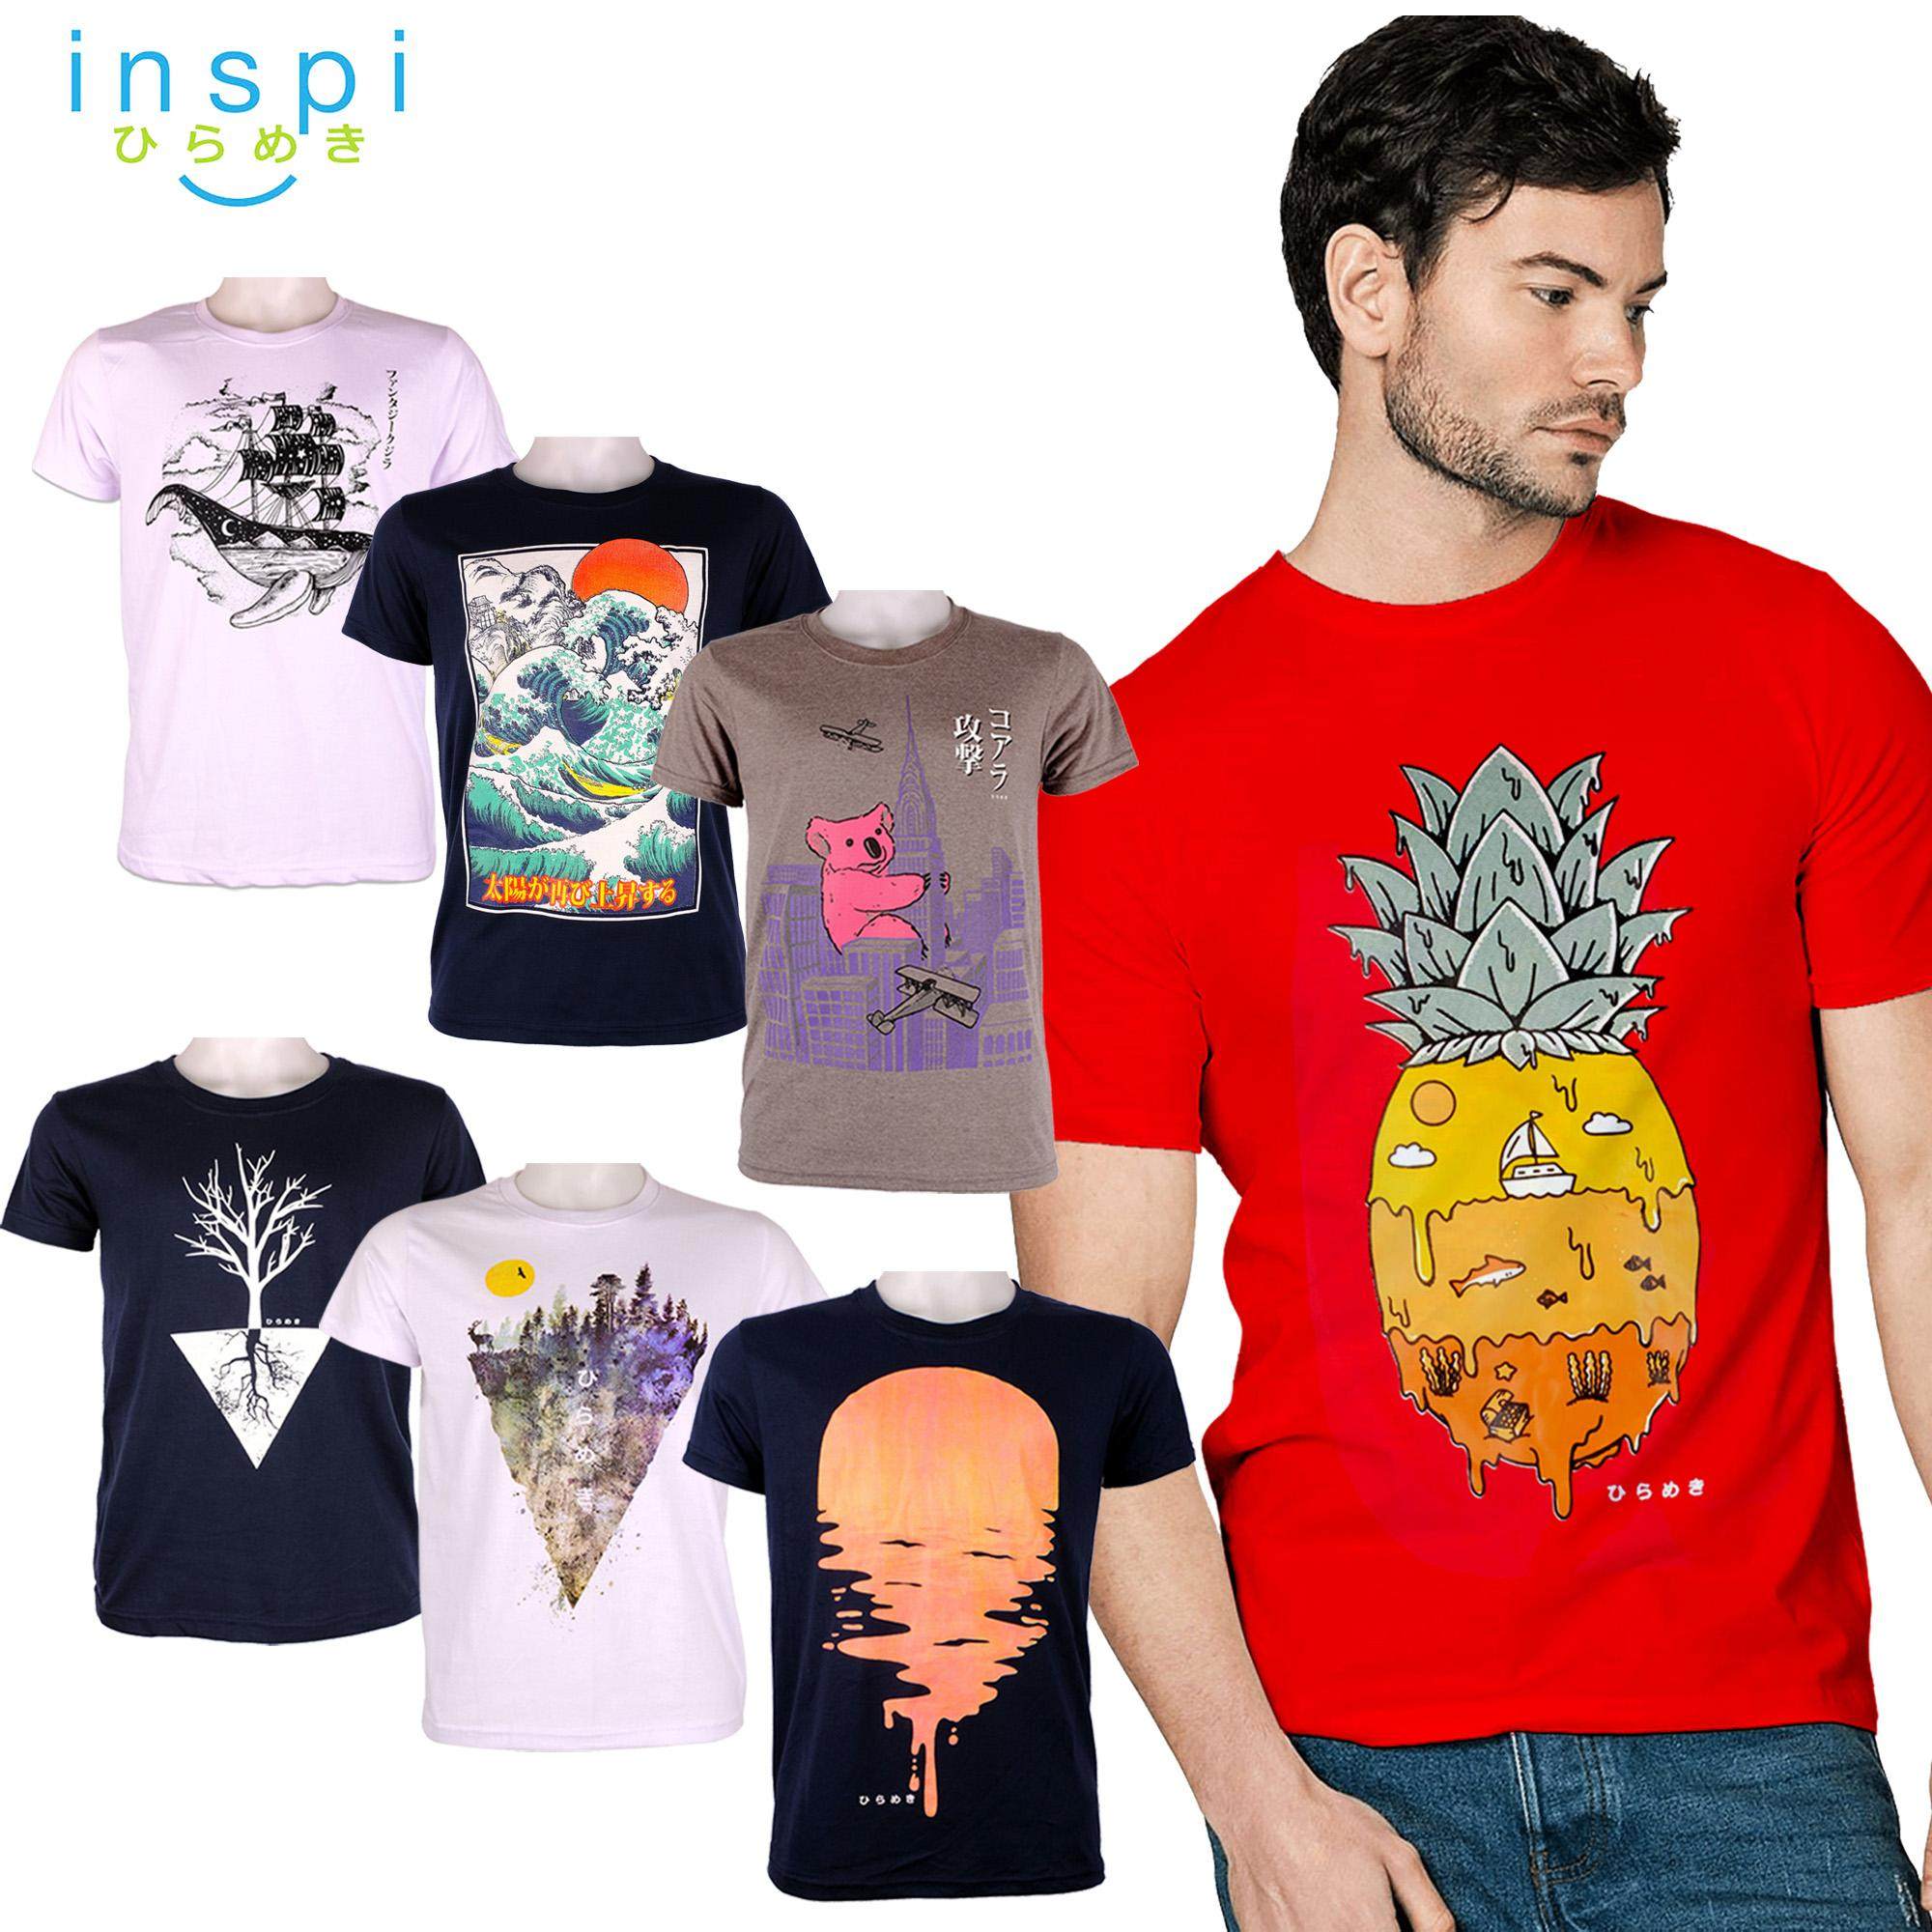 120a2ee7c98 INSPI Tees Nature Collection tshirt printed graphic tee Mens t shirt shirts  for men tshirts sale